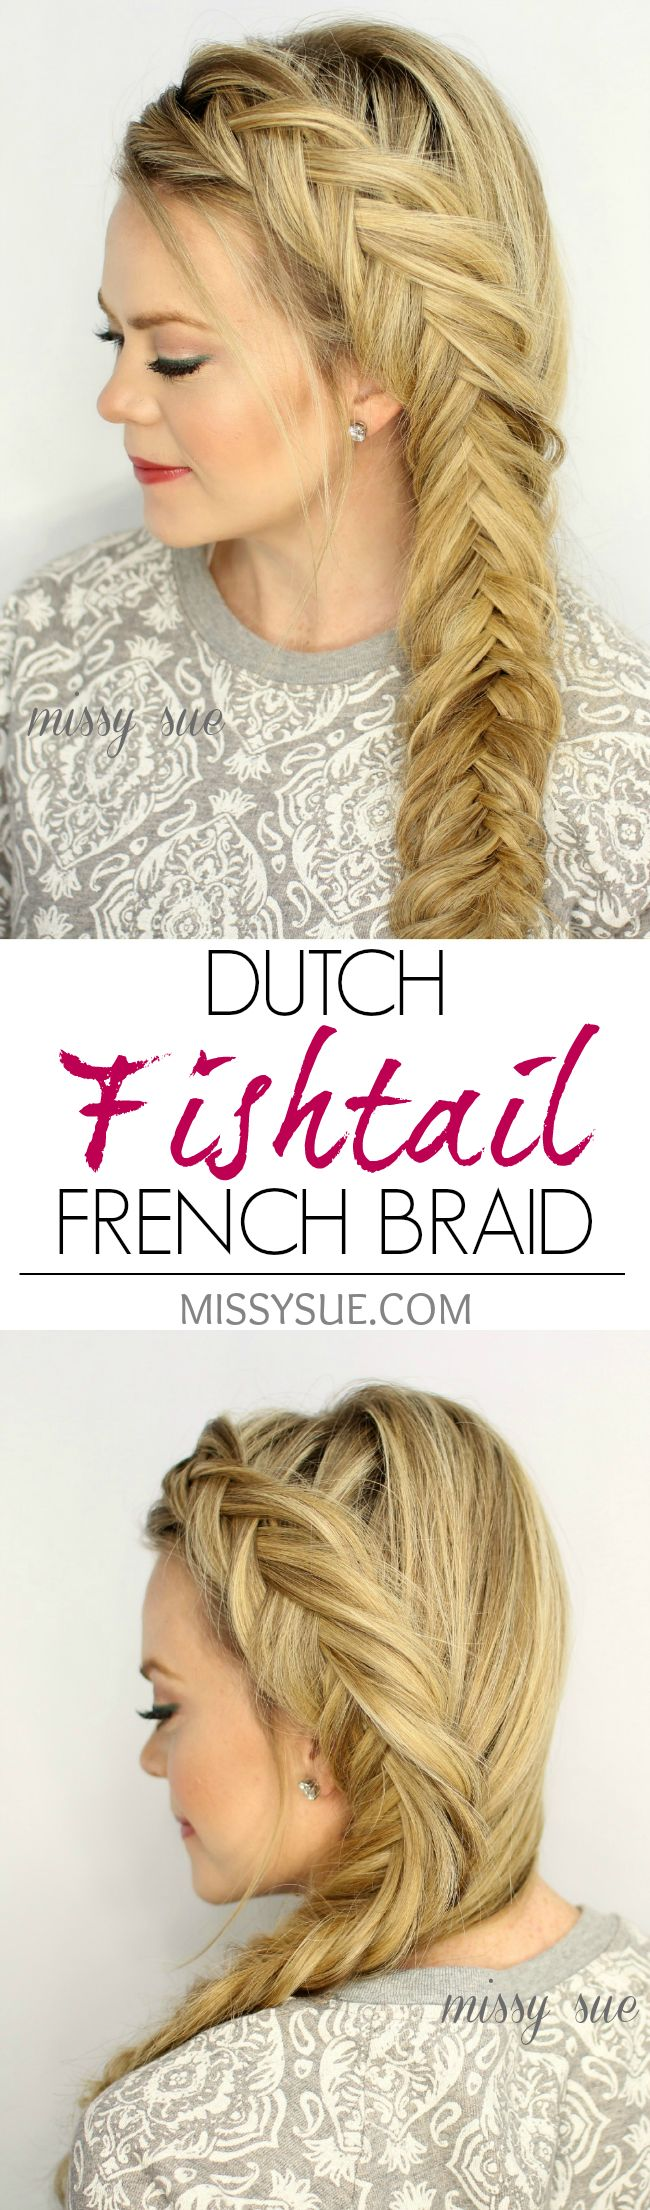 Dutch Fishtail French Braid - Nette lange Frisuren